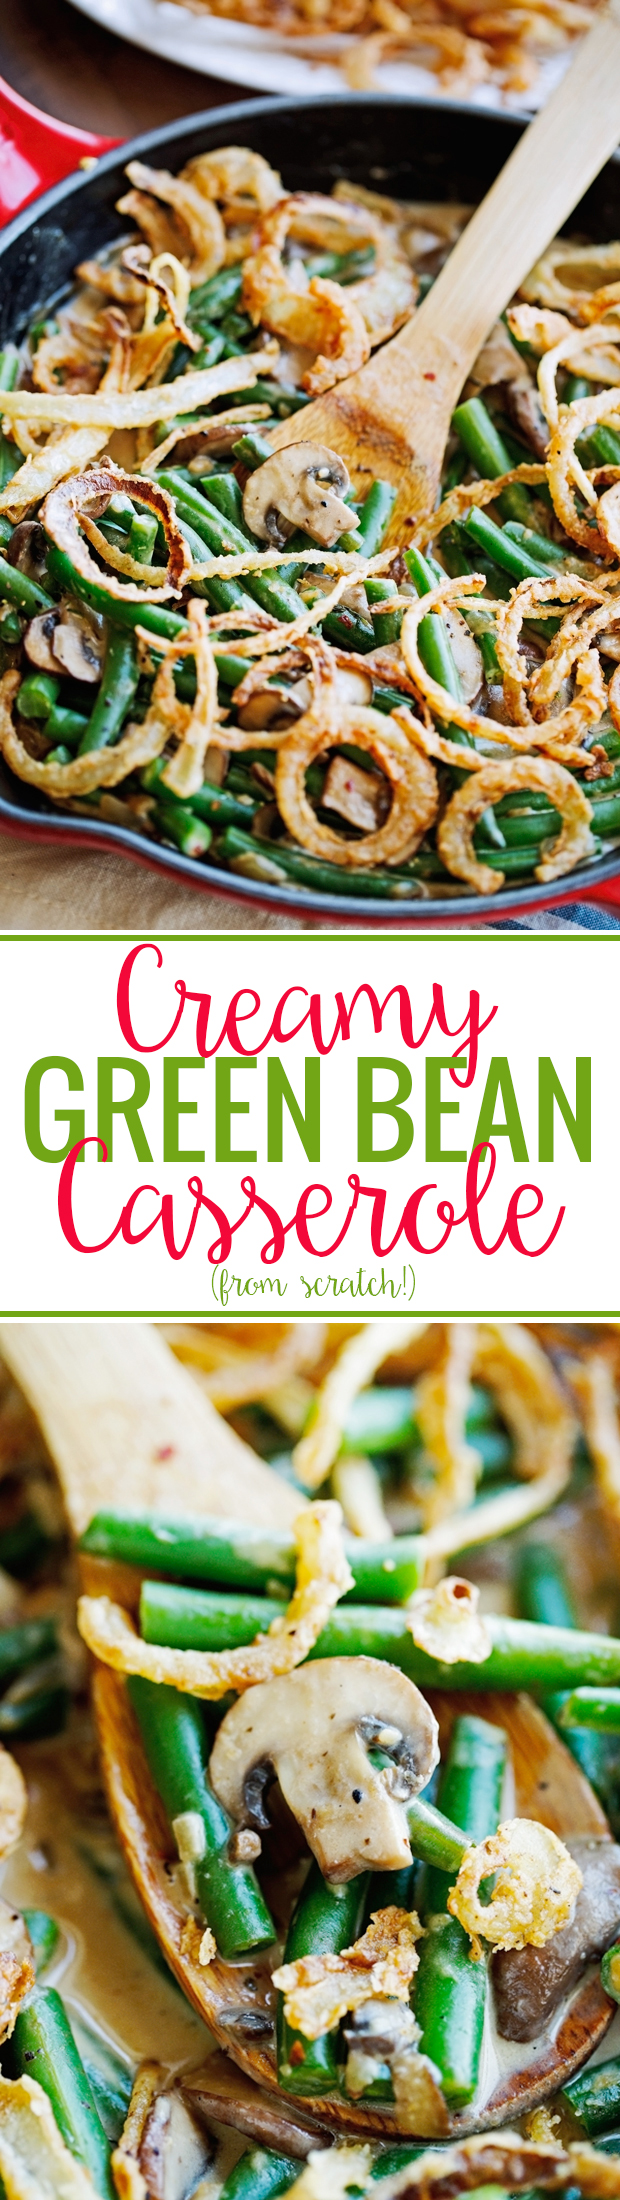 Creamy Green Bean Casserole From Scratch - This recipe is easy to follow and is made mostly from pantry staples! #greenbeancasserole #casserole #thanksgiving | Littlespicejar.com @littlespicejar